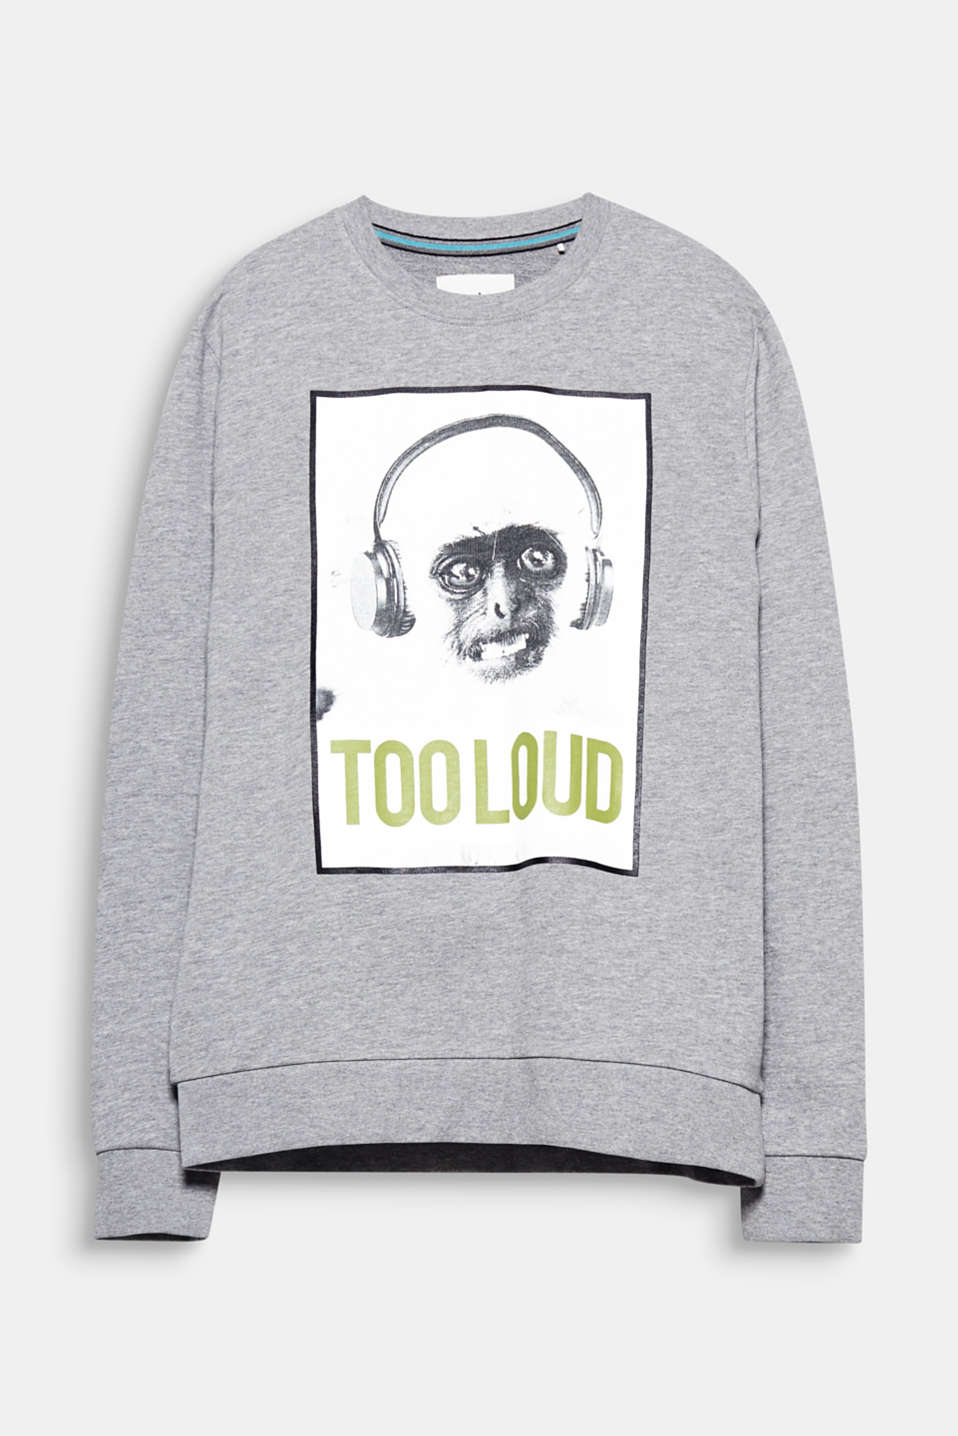 Too loud! The ironic photo print makes this sweatshirt a funny fashion style.